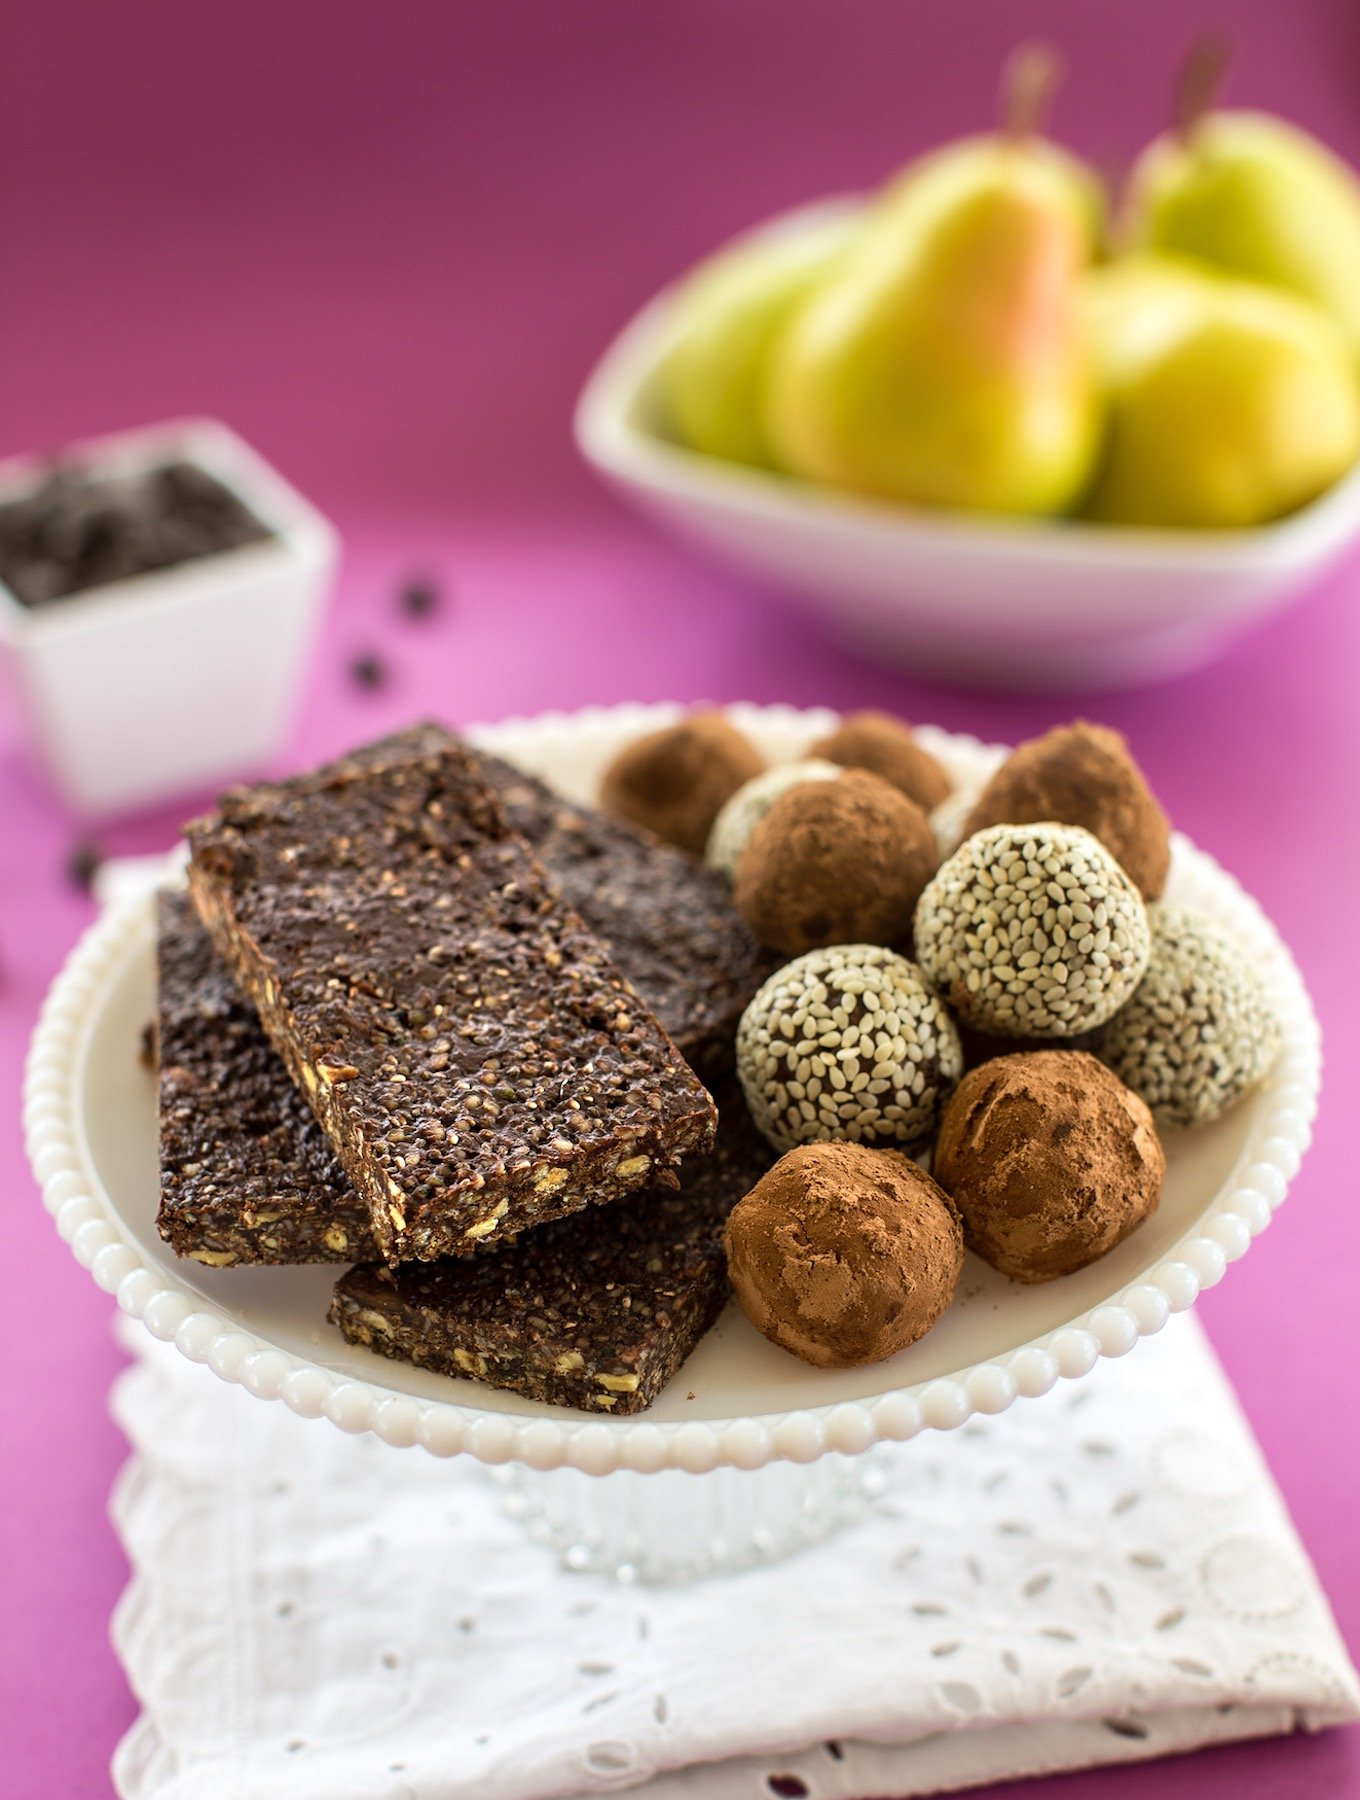 Energy bars and truffles cropped